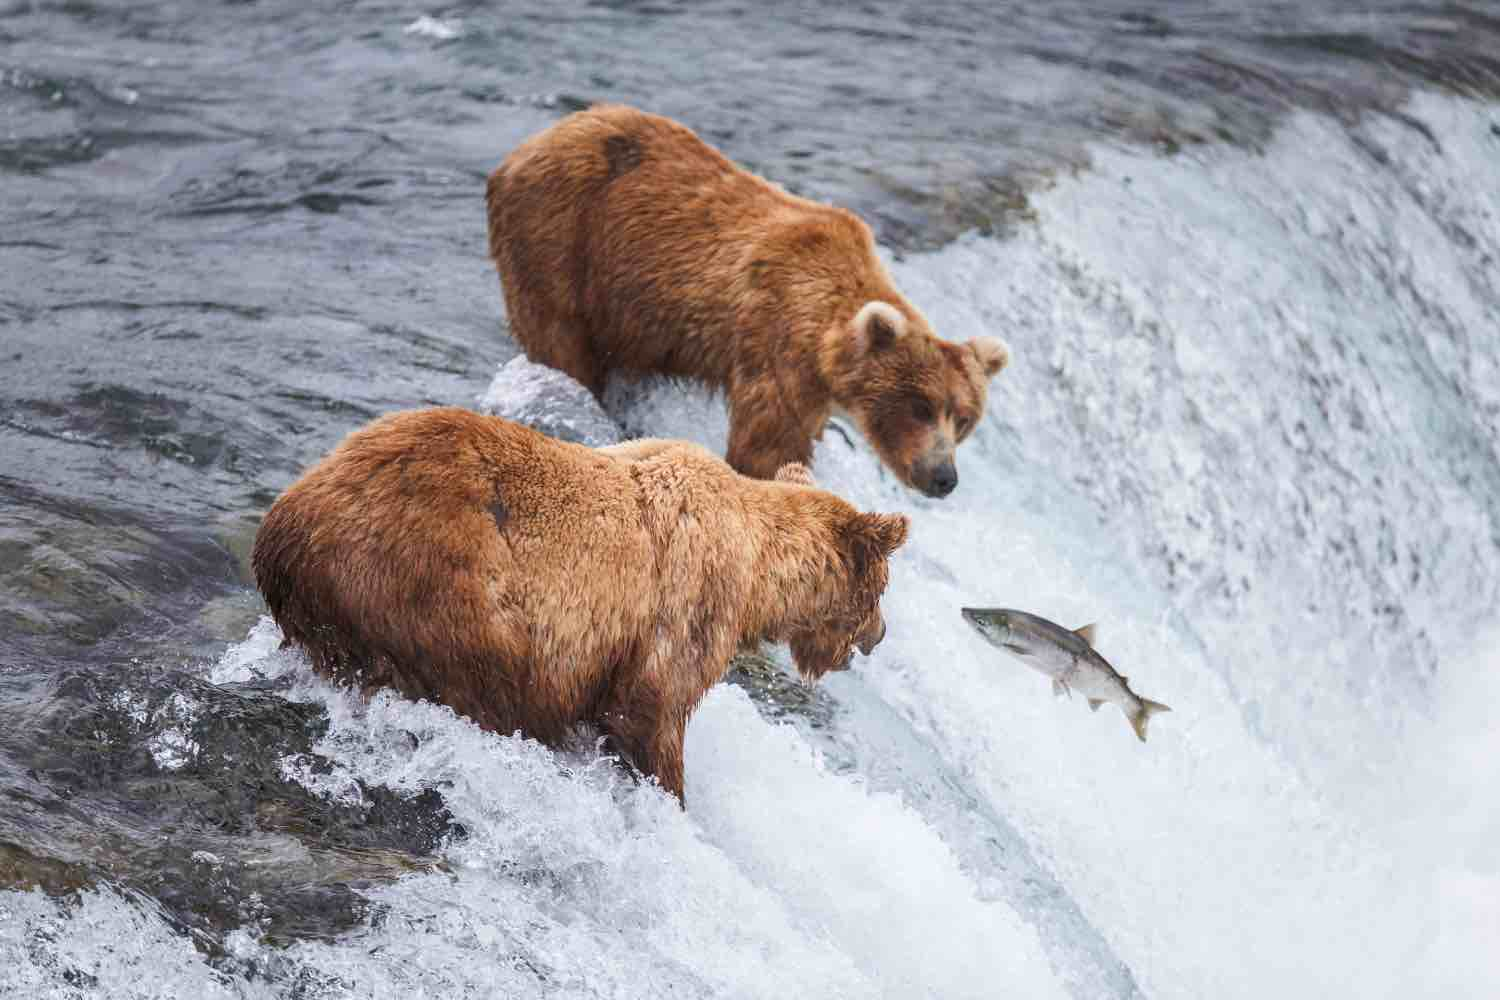 Grizzly bears feeding on salmon in Alaska